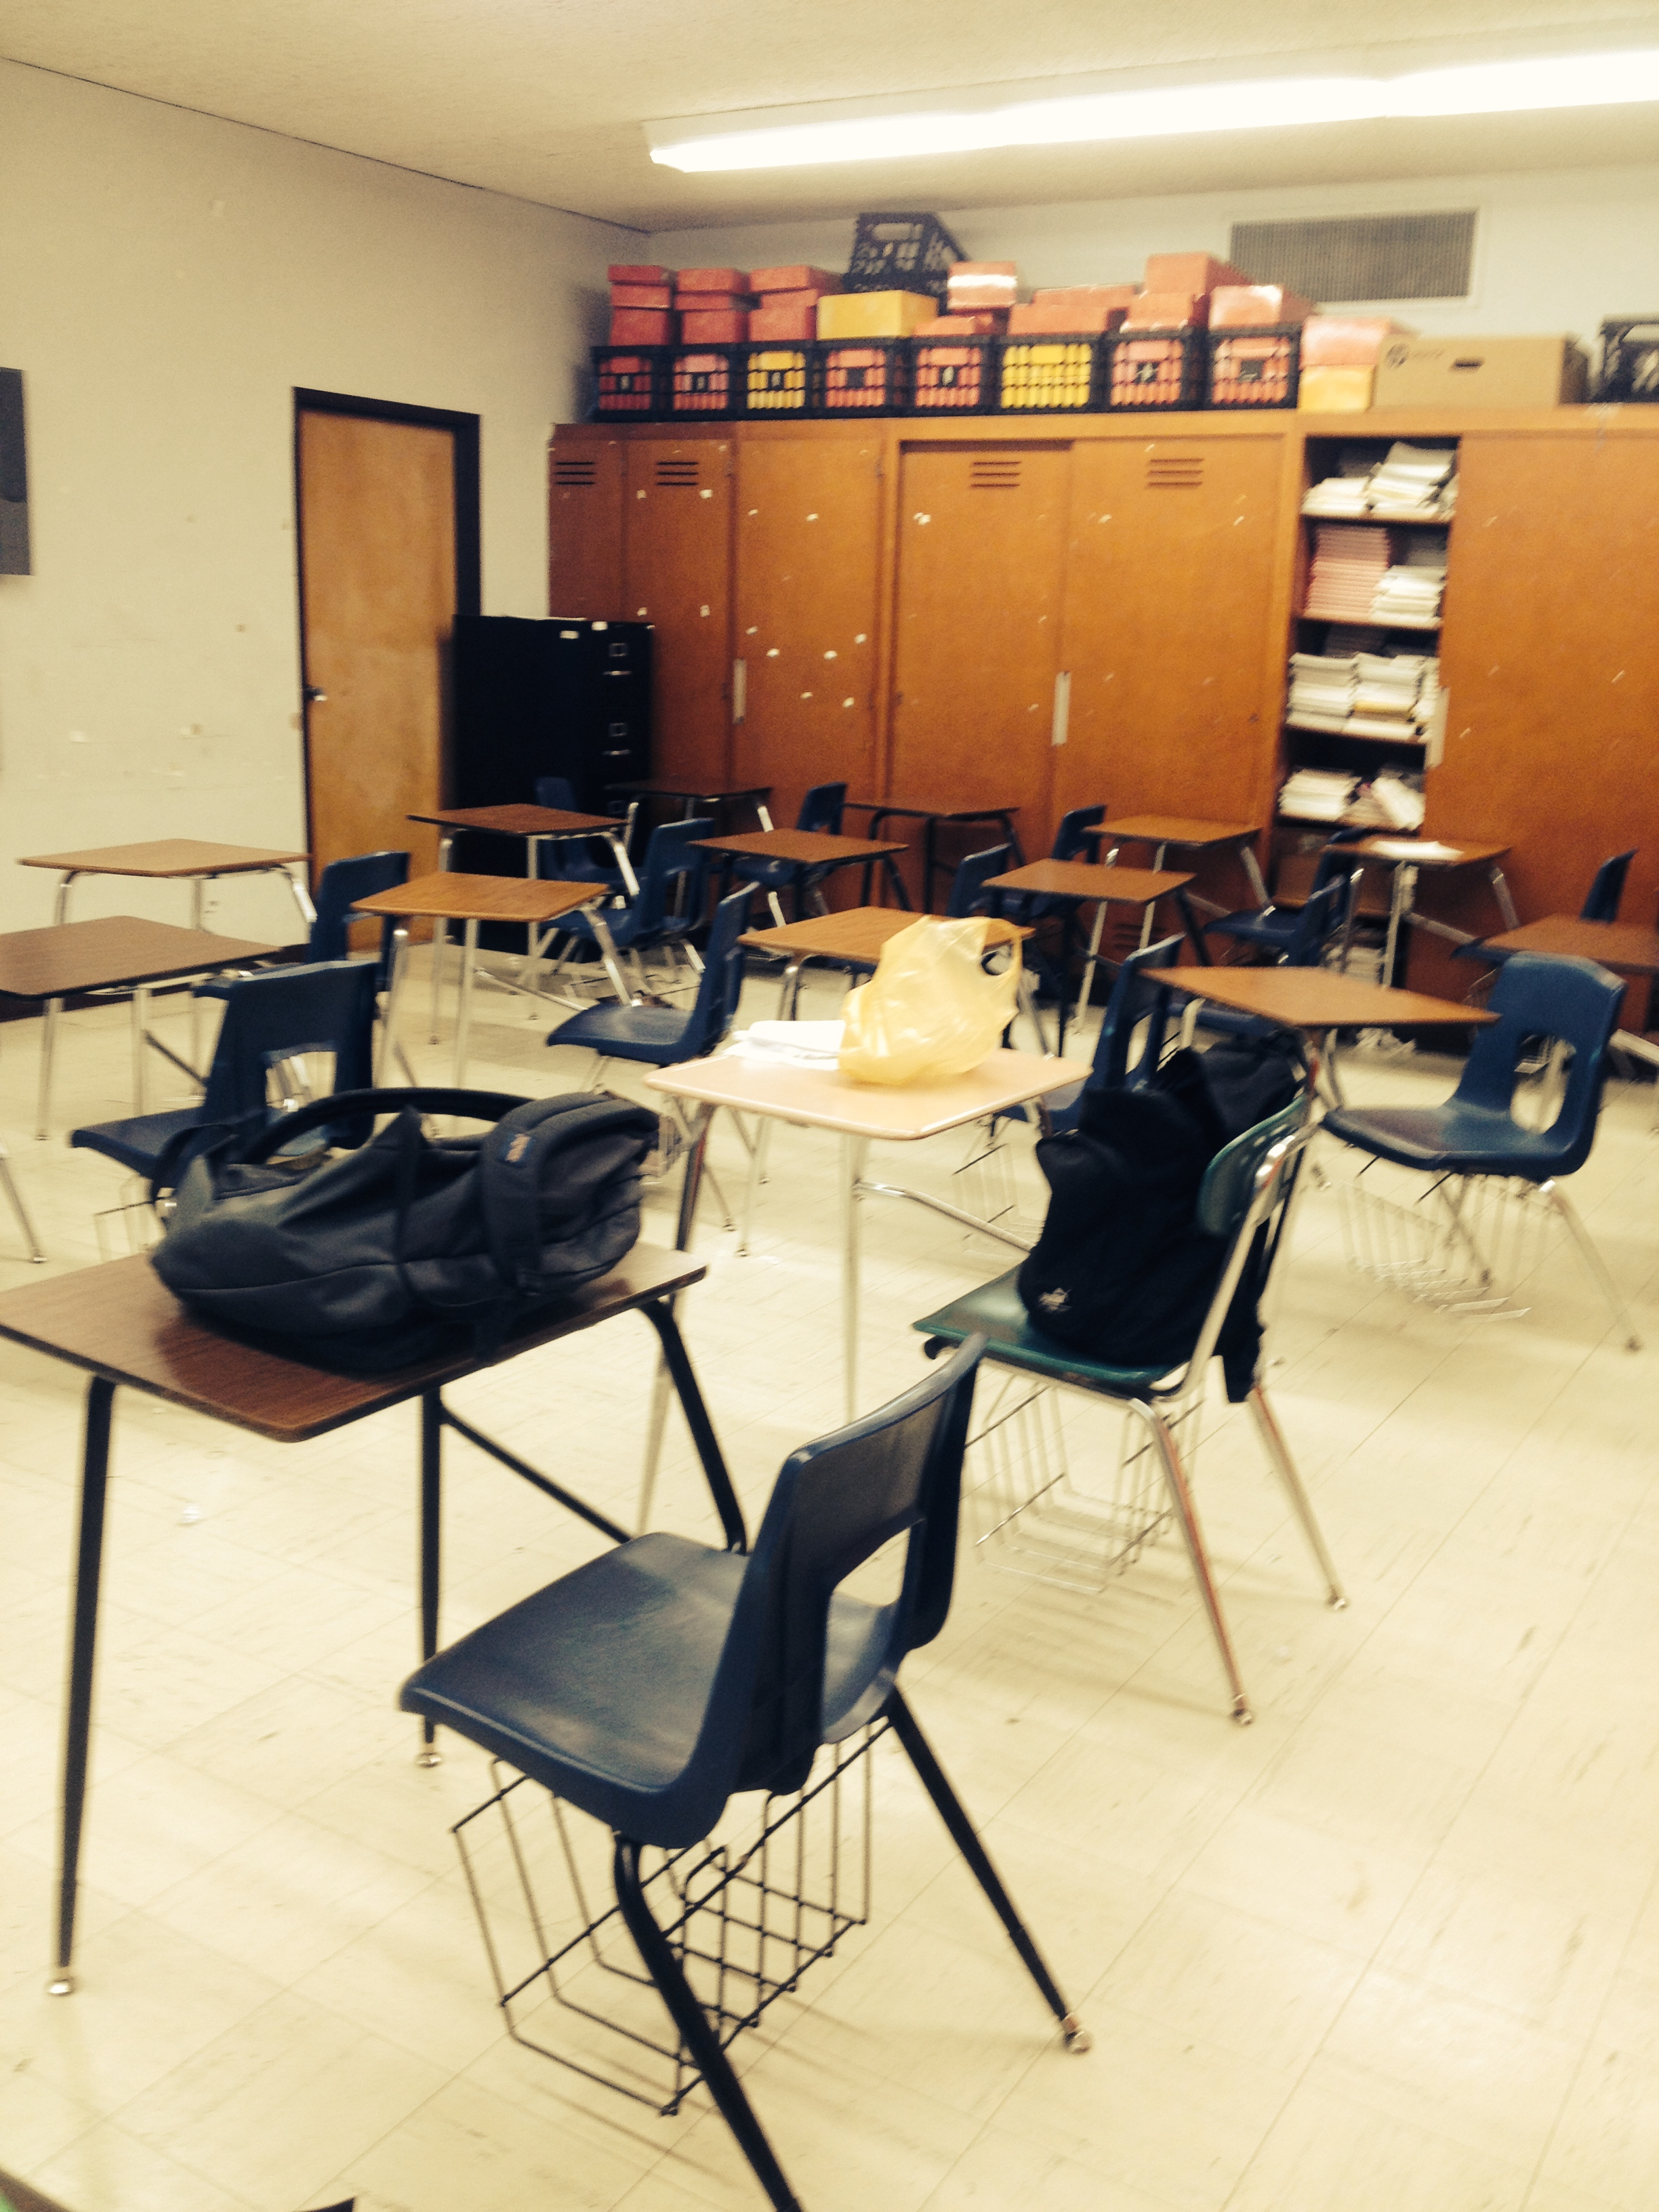 Temporary classroom after my classroom heater caught fire. Never a dull moment.